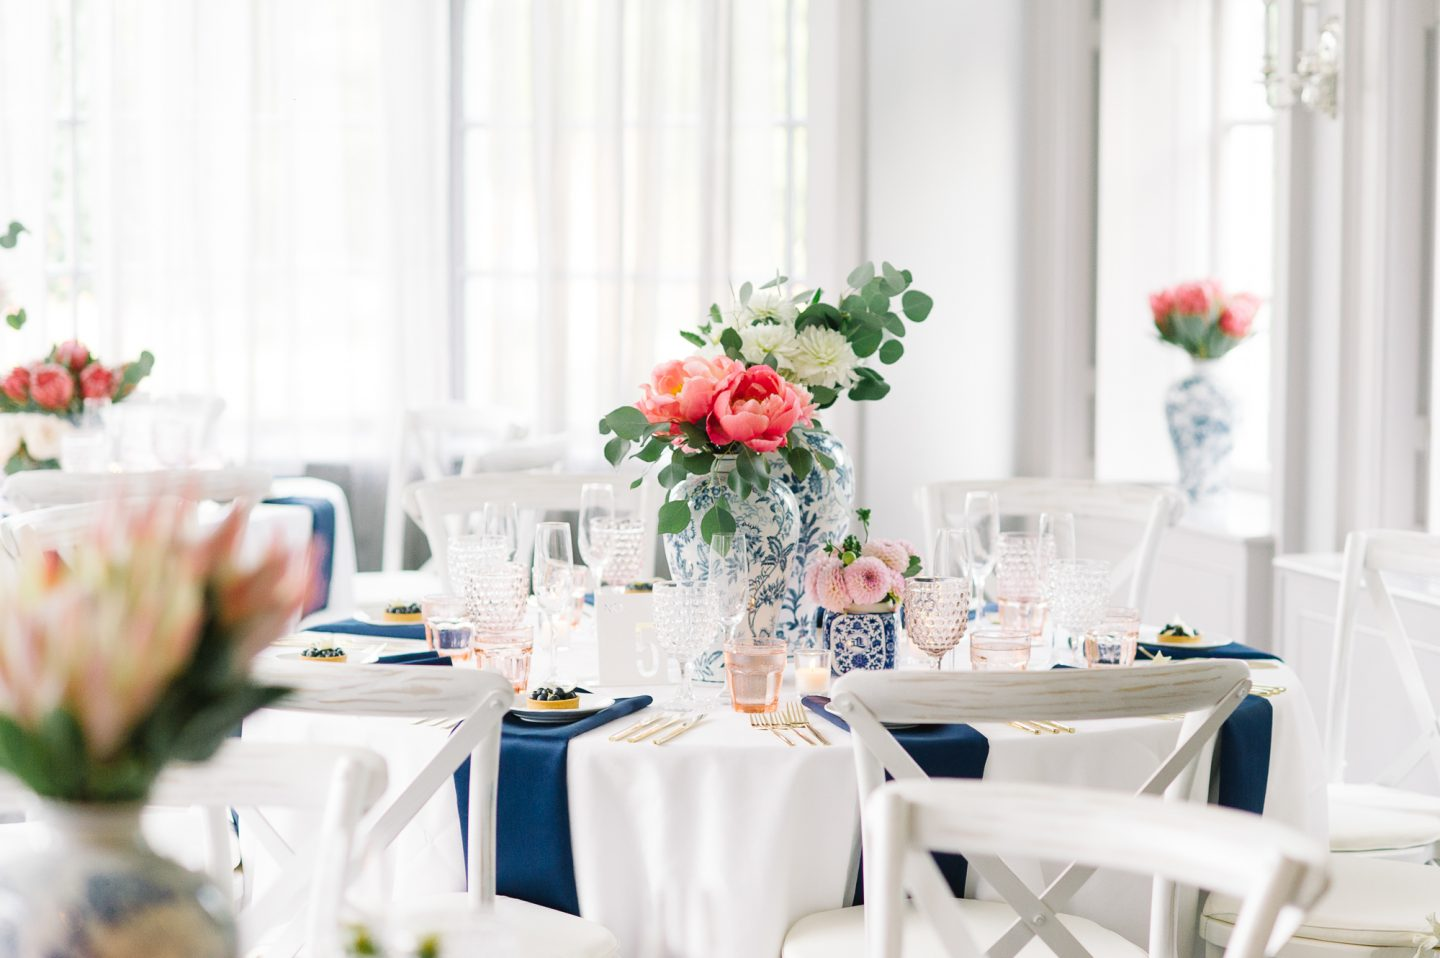 tara-mcmullen-photography-barb-simkova-mclean-house-wedding-estates-of-sunnybrook-wedding-shealyn-angus-wedding-blush-and-bloom-wedding-028